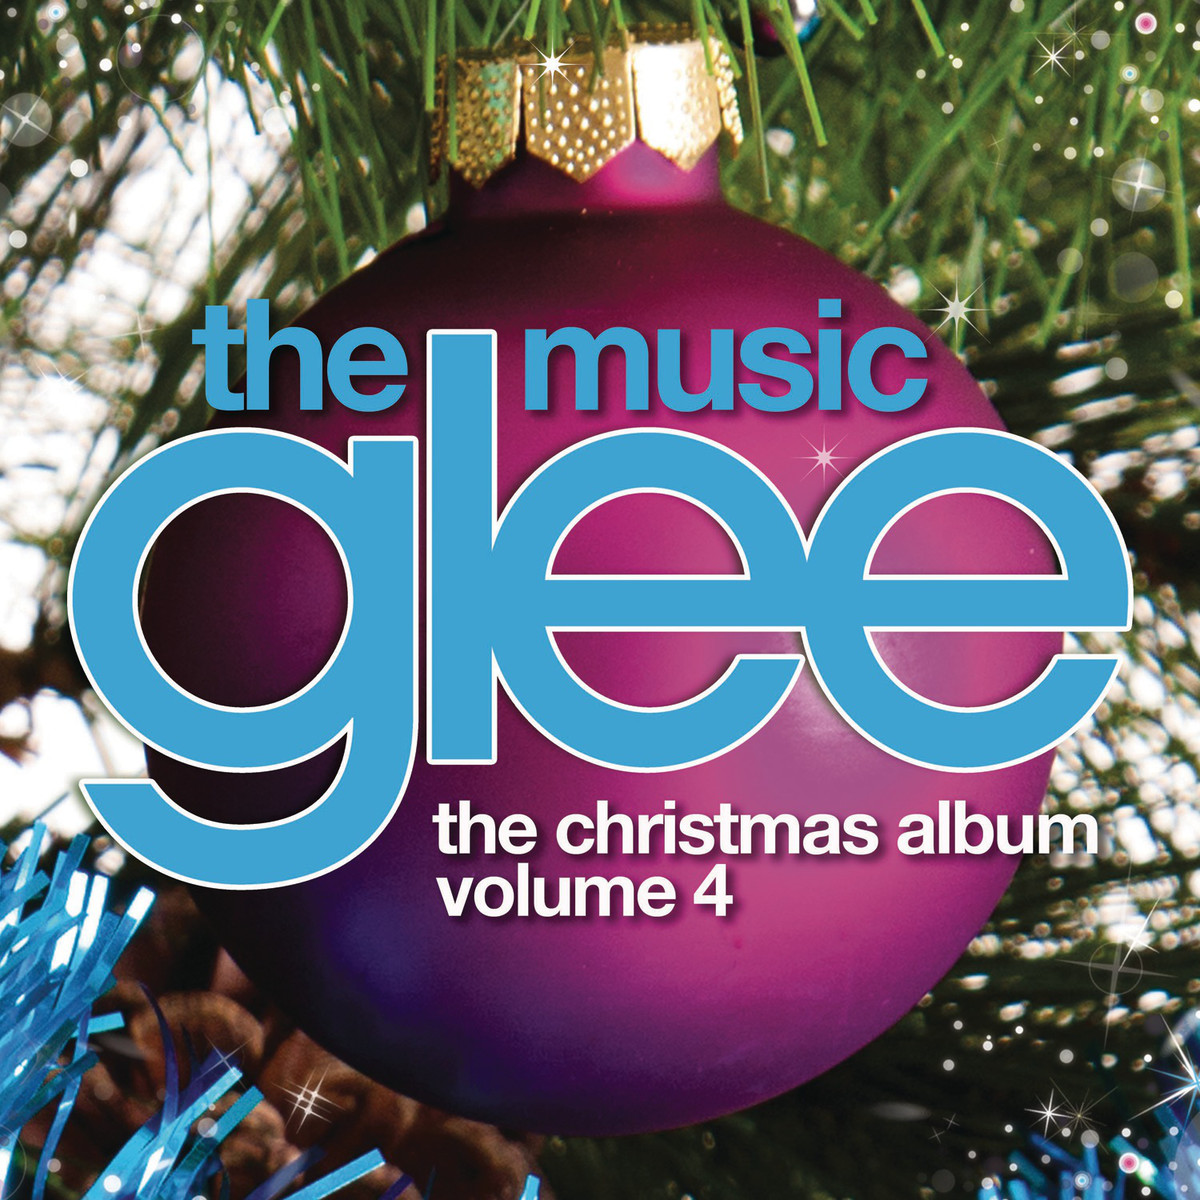 Glee: The Music, the Christmas Album Volume 4 | Christmas Specials ...